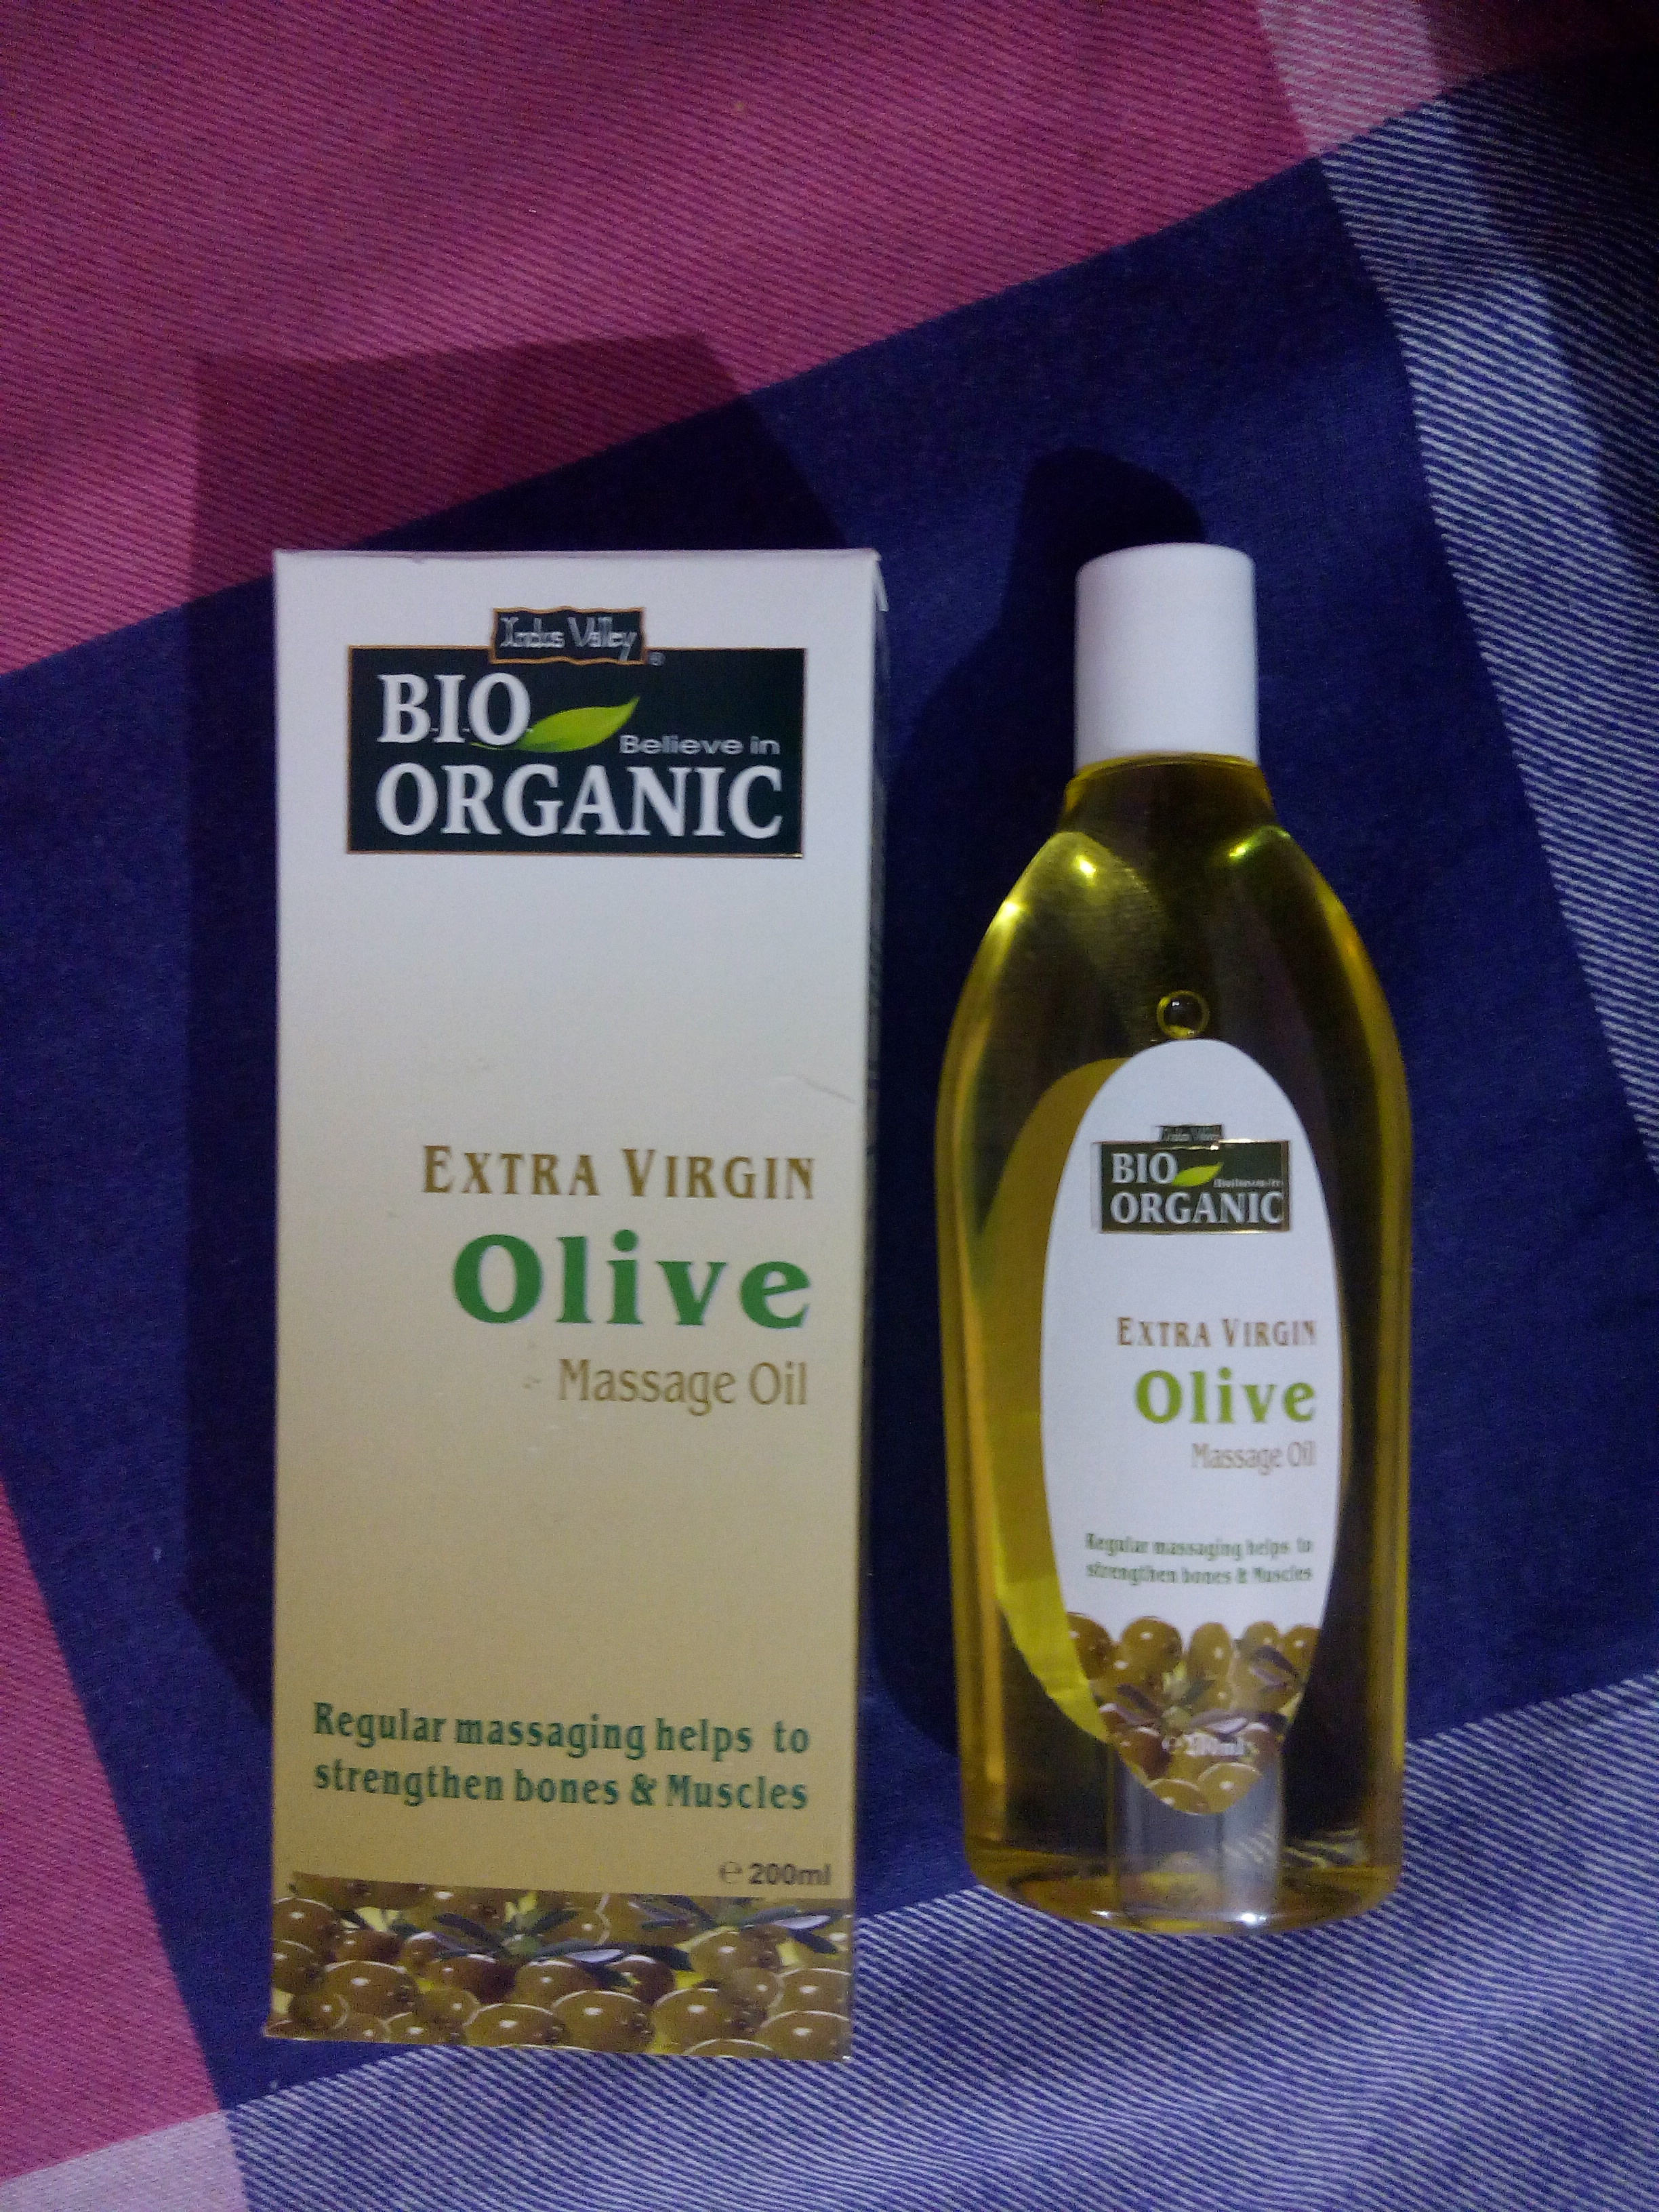 Indus Valley Bio Organic Extra Virgin Olive Massage Oil-Good olive oil-By neha_tandon